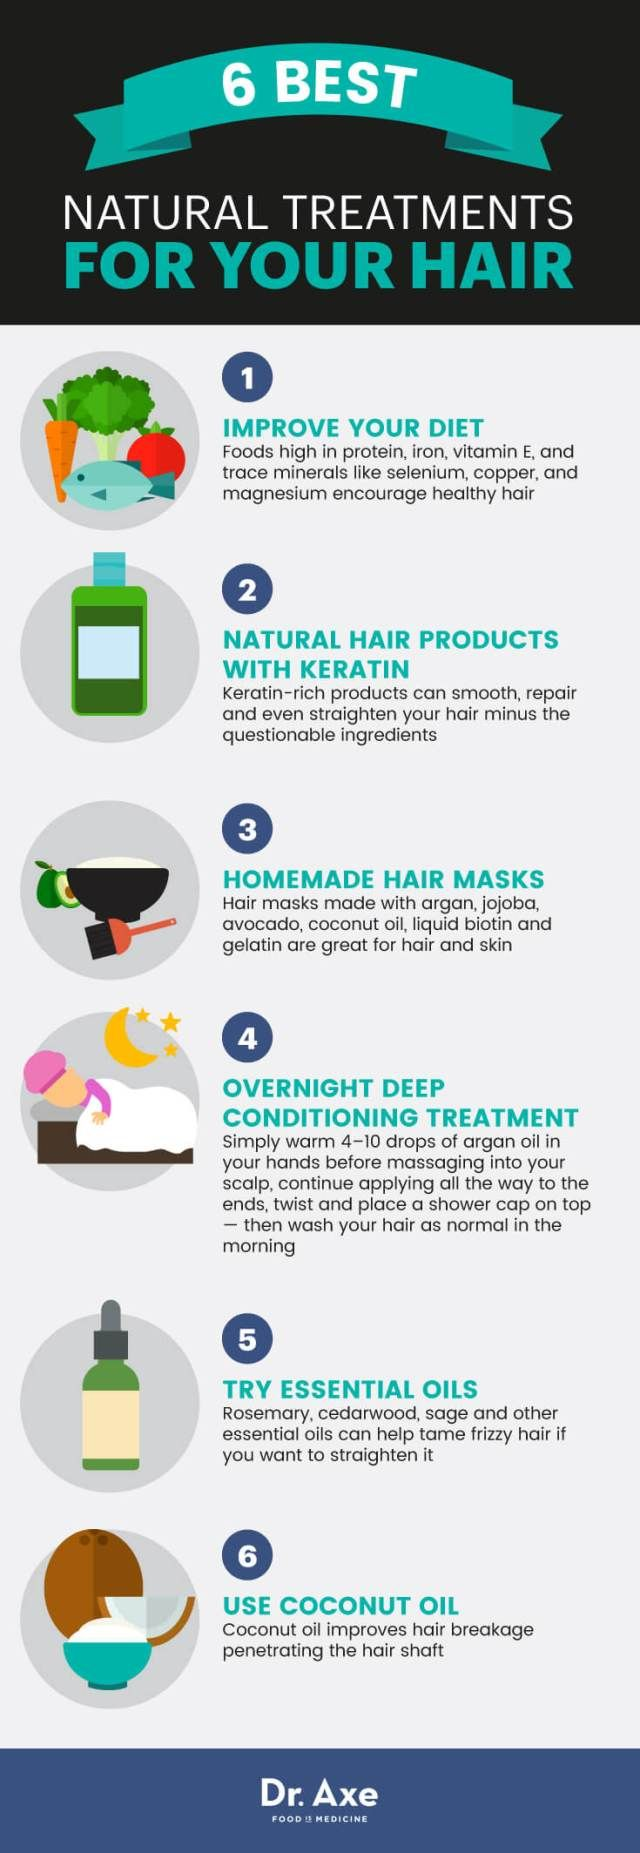 Magic straight perm vs keratin - Have You Tried Brazilian Hair Straightening Also Known As Brazilian Keratin Treatment Many People